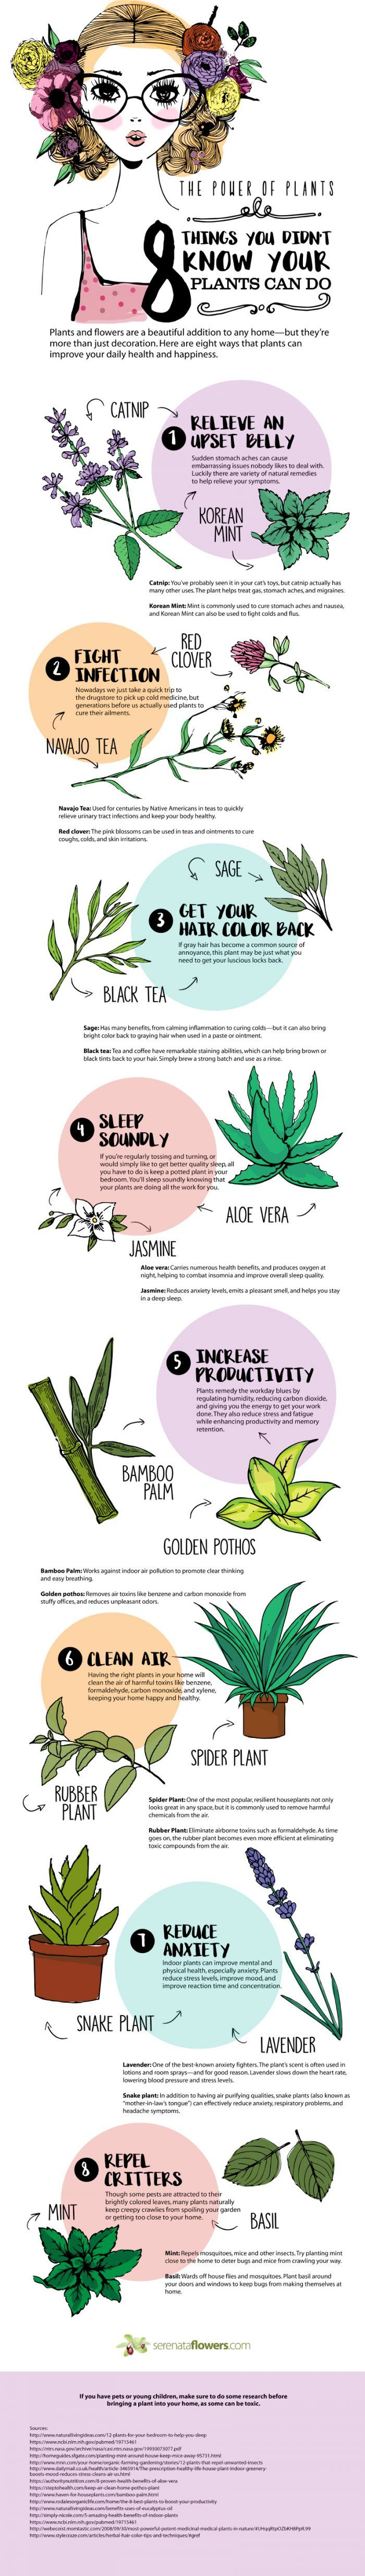 Defeat Illness With Plants You Own Daily Infographicdaily Infographic Plants Infographic Gardening Advice